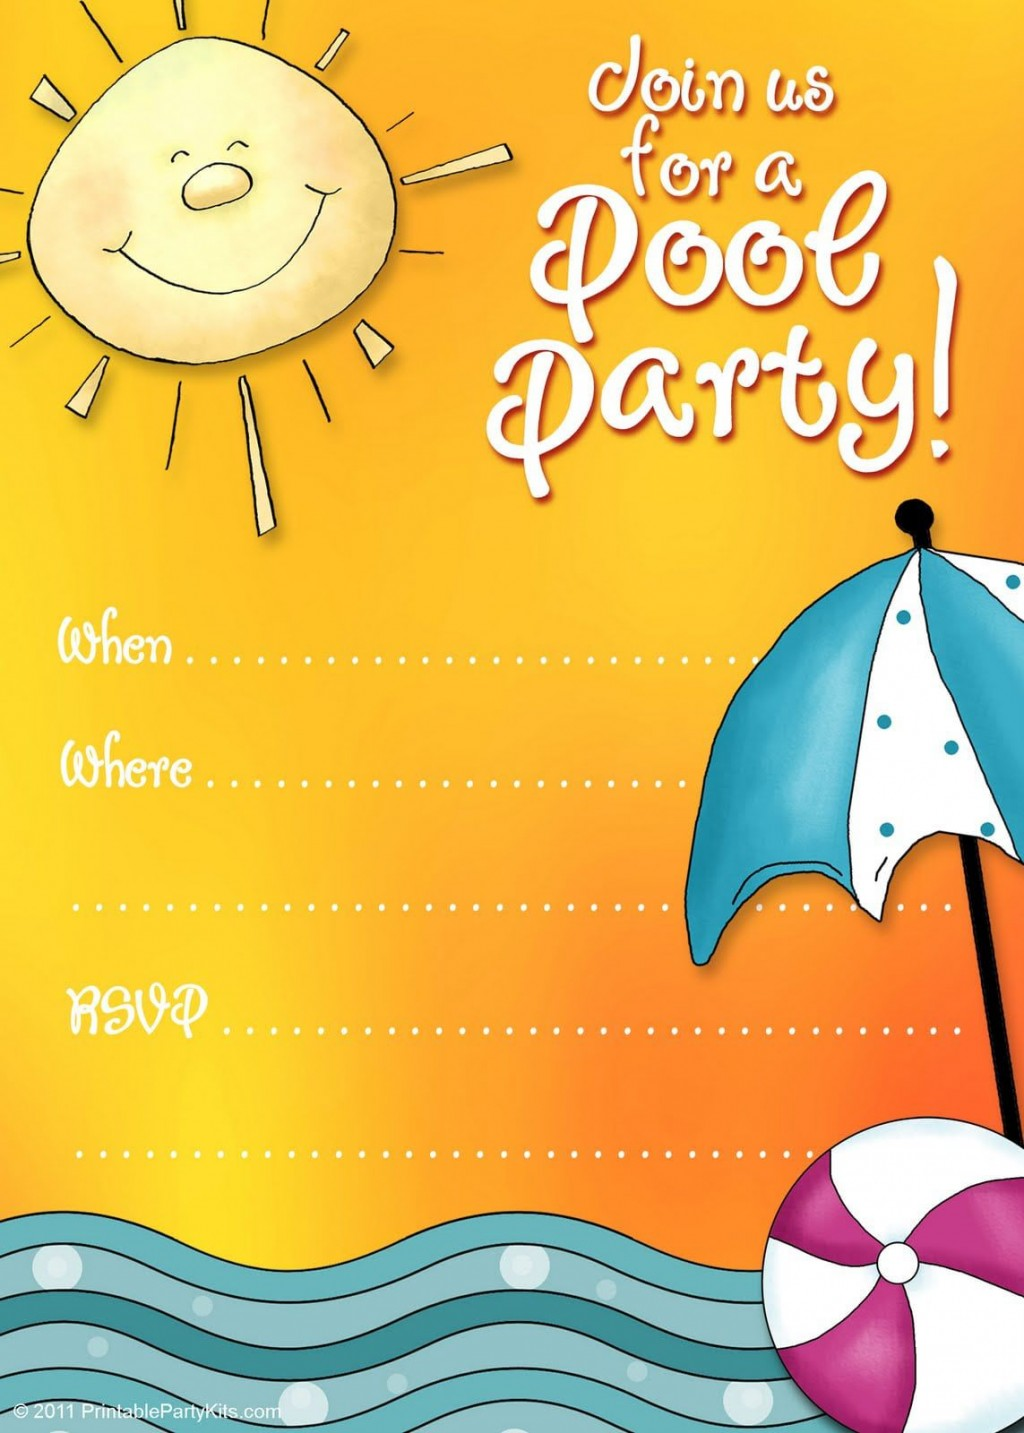 004 Unforgettable Free Pool Party Invitation Template Printable High Resolution  Card SummerLarge